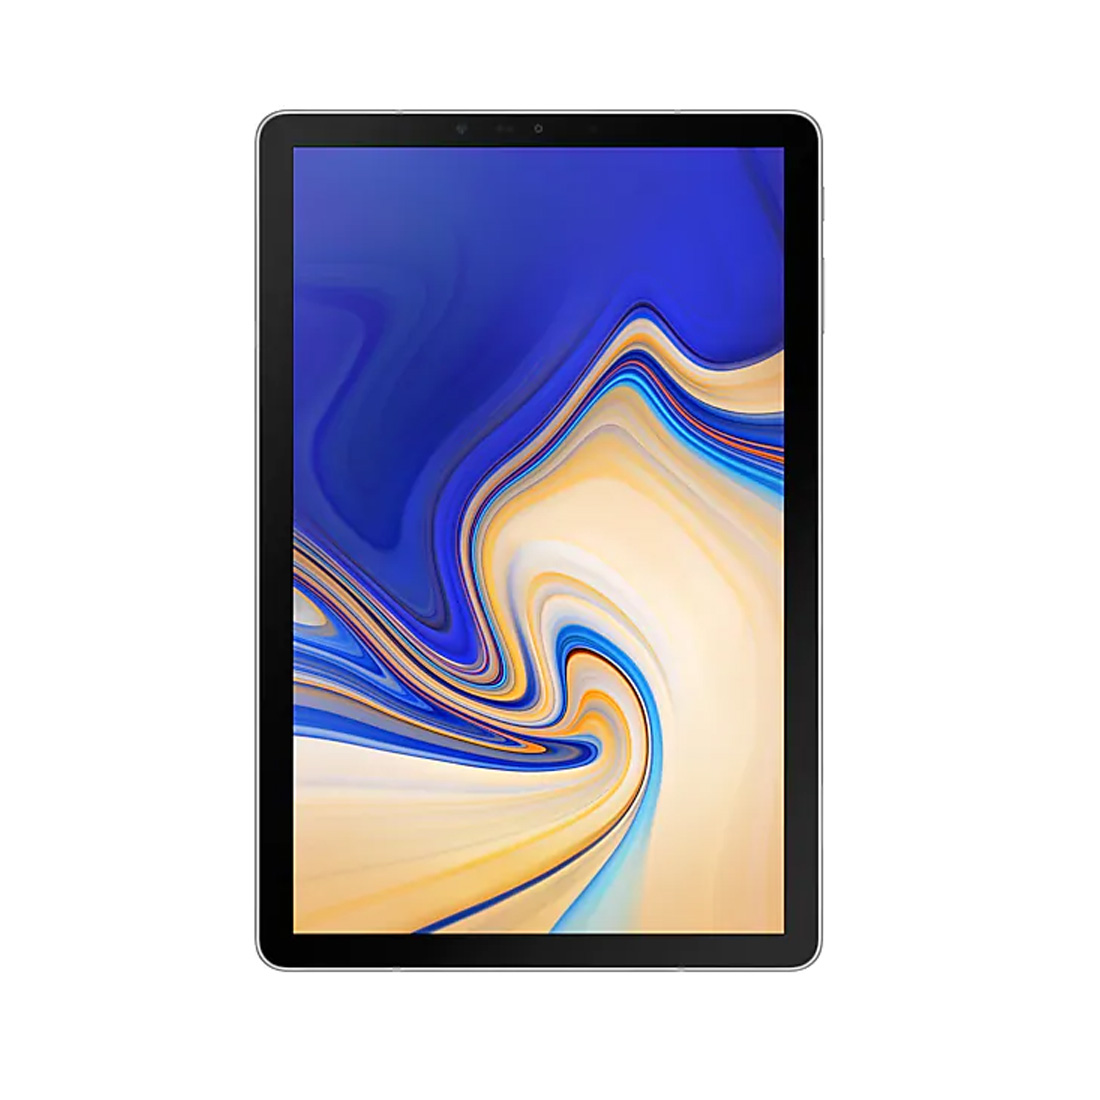 "Samsung Galaxy Tab S4 10.5"" 256GB Wi-Fi with S-Pen - Grey"